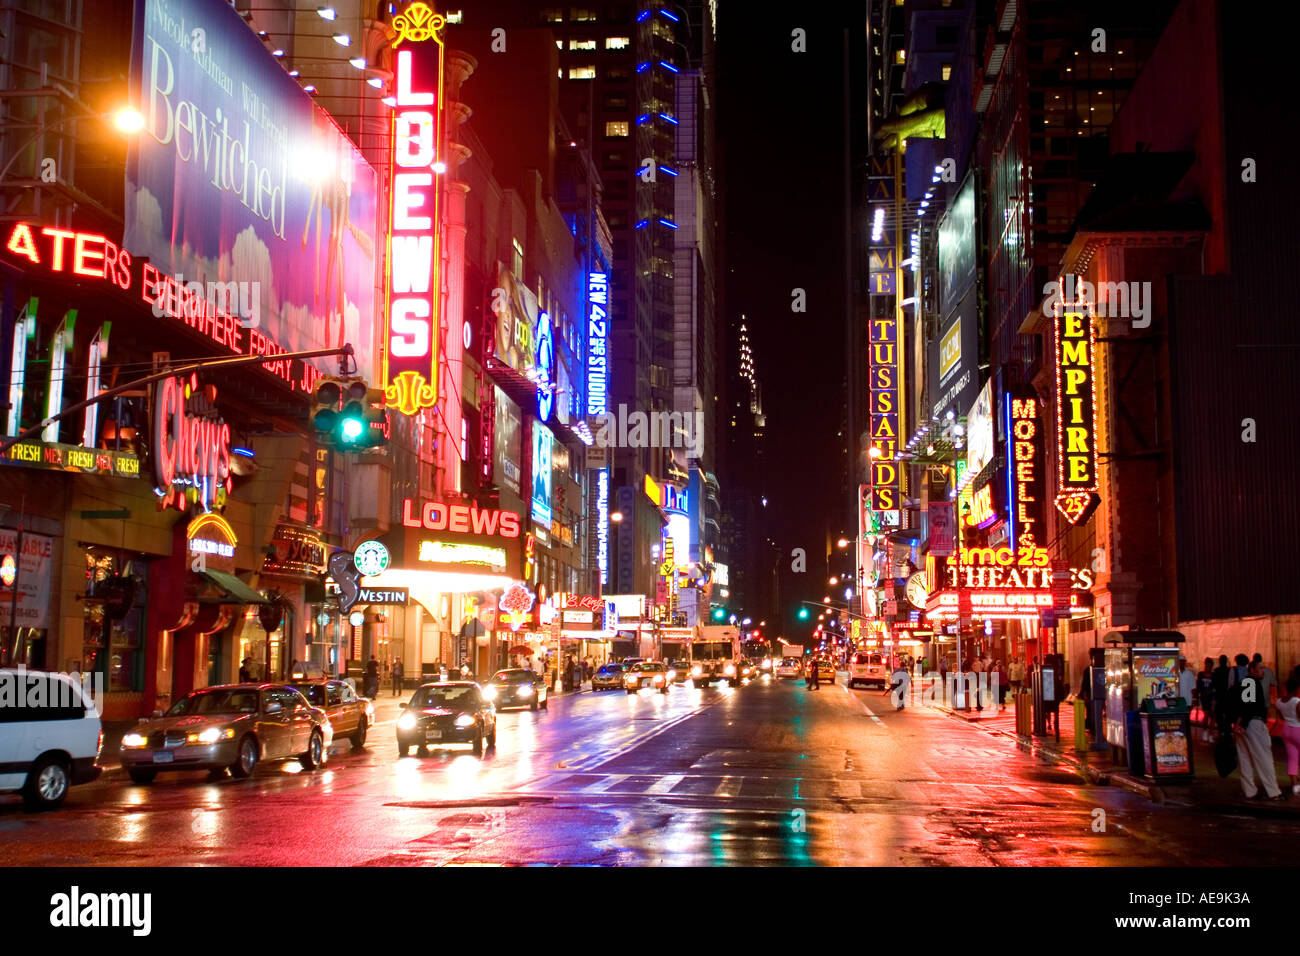 42nd St Times Square NY USA - Stock Image